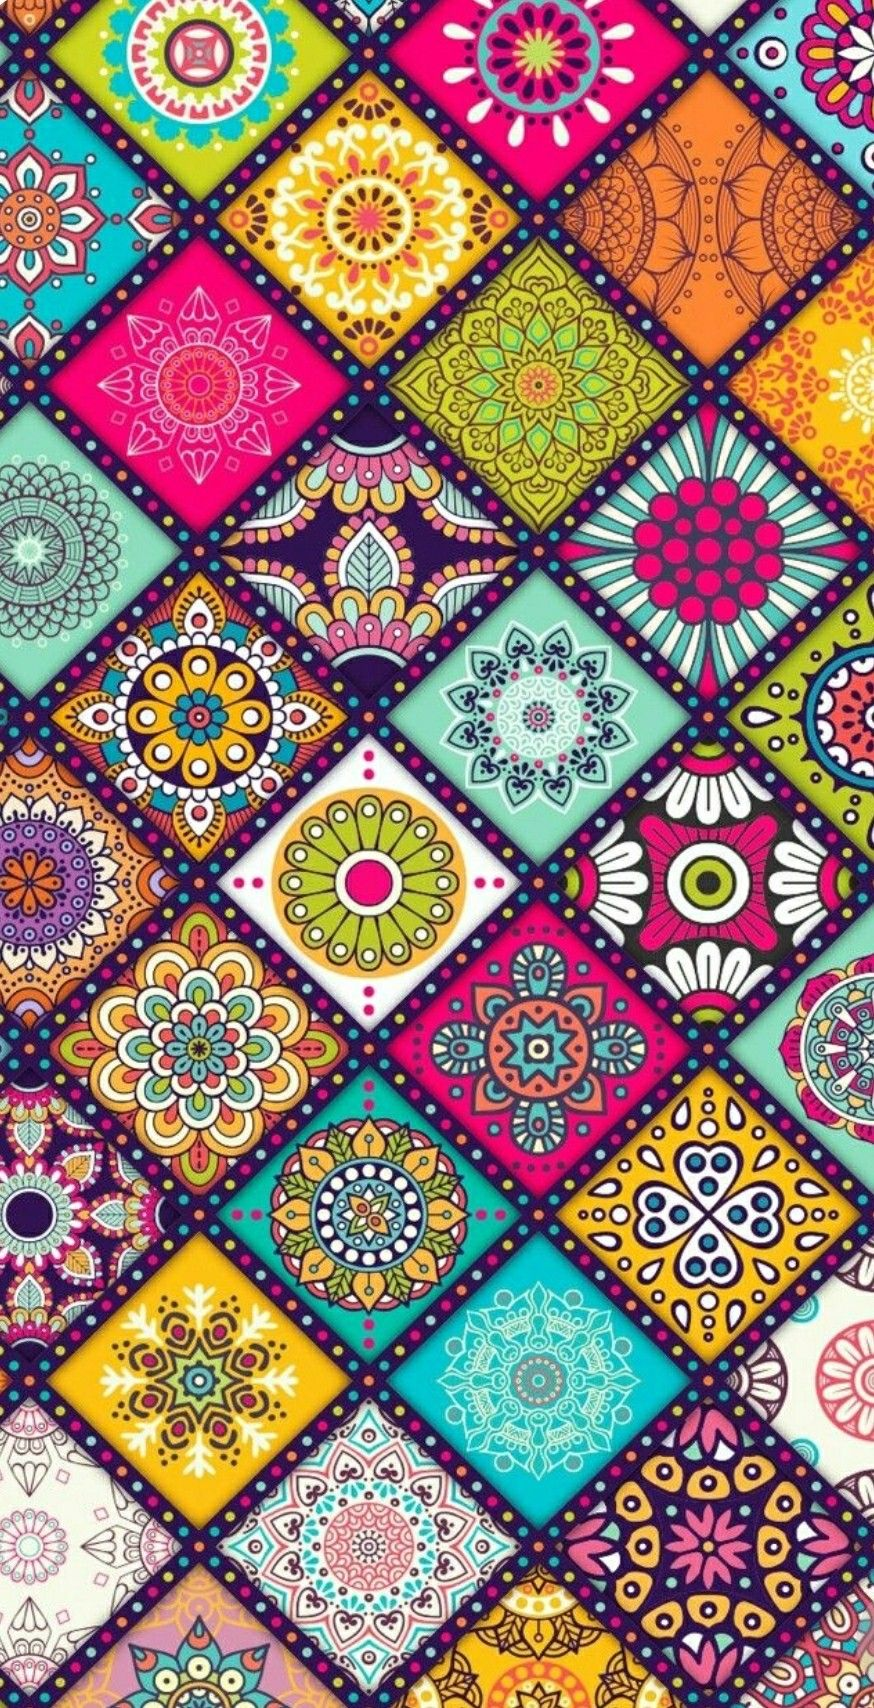 Pin By Victoria Lozano On Wallpapers Hippie Painting Paisley Art Brick Art